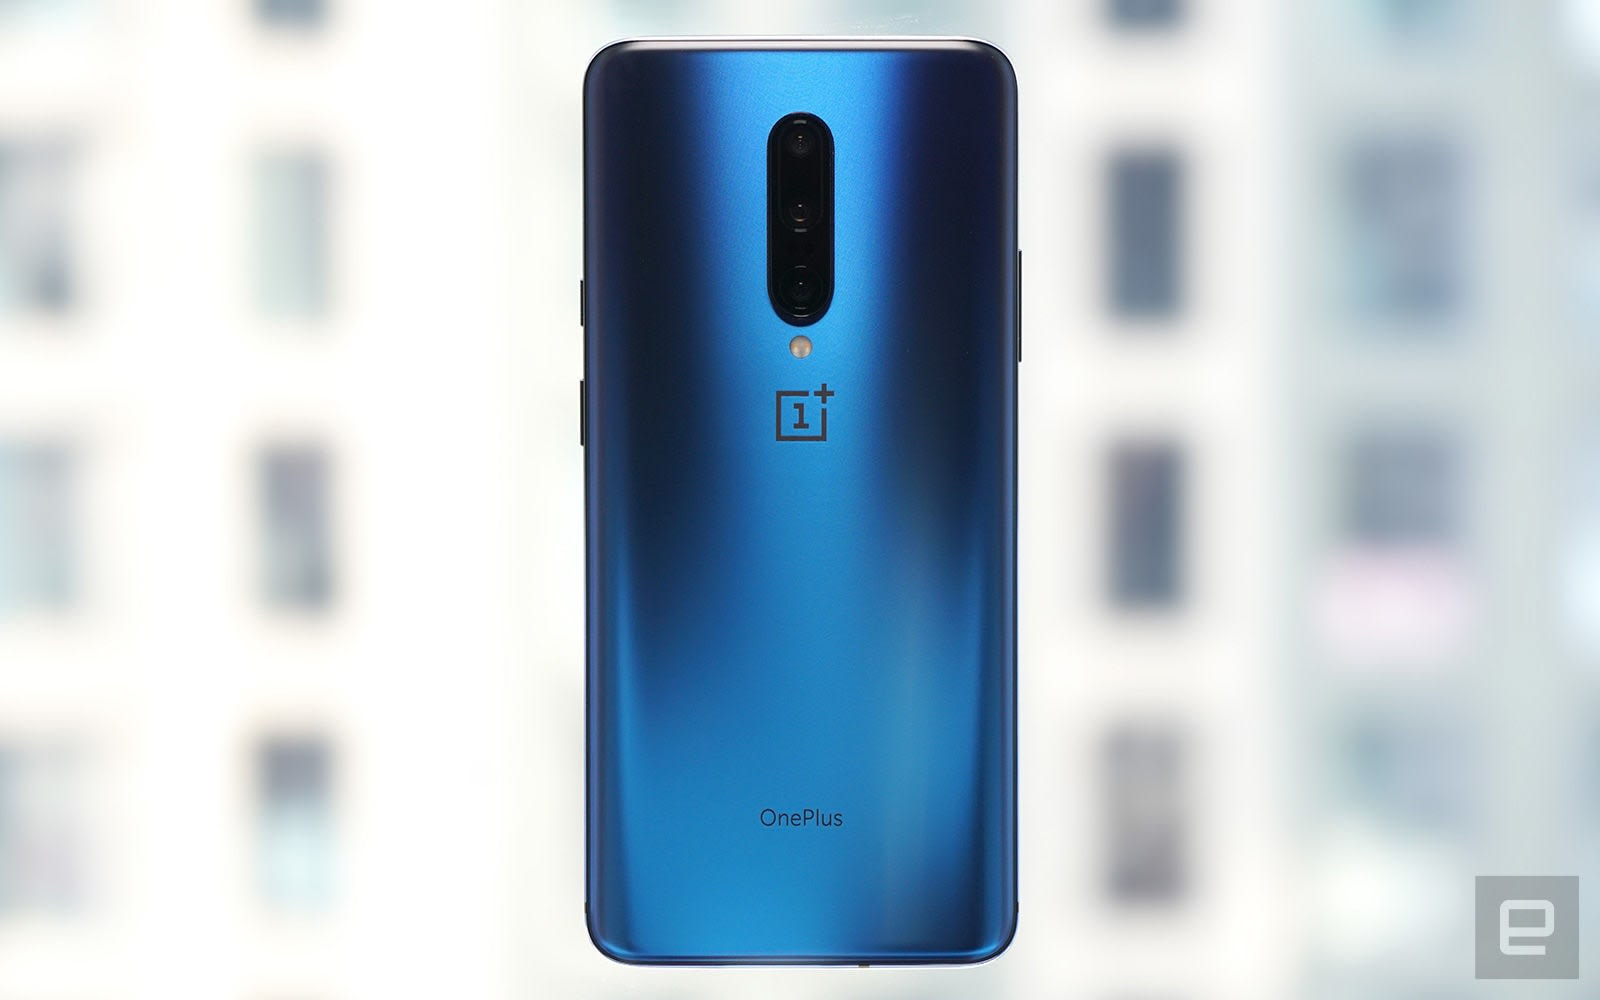 OnePlus admits it sent bizarre notifications to OnePlus 7 Pro owners